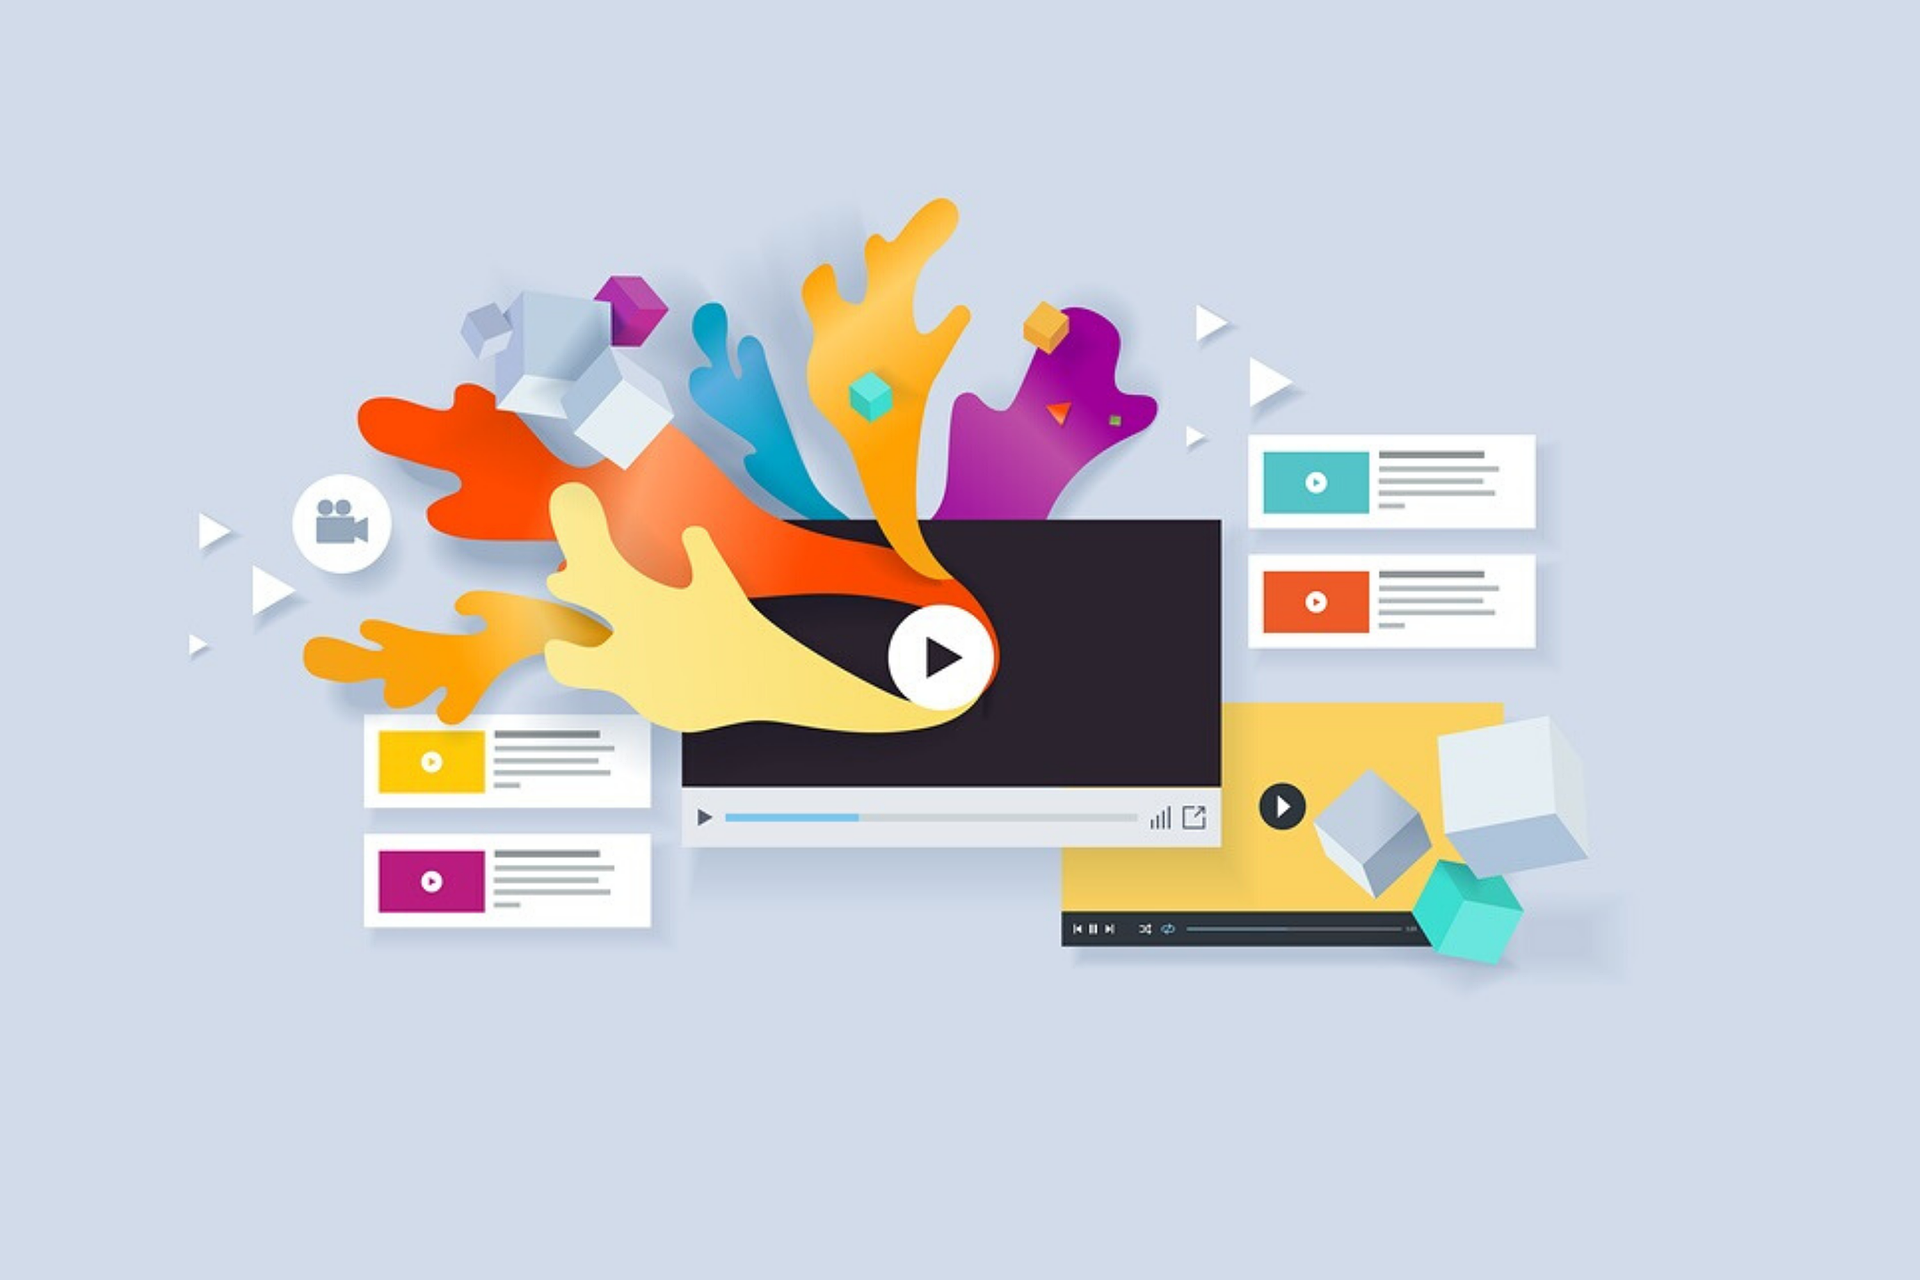 How Sales Reps Can Action Insights from Video Analytics